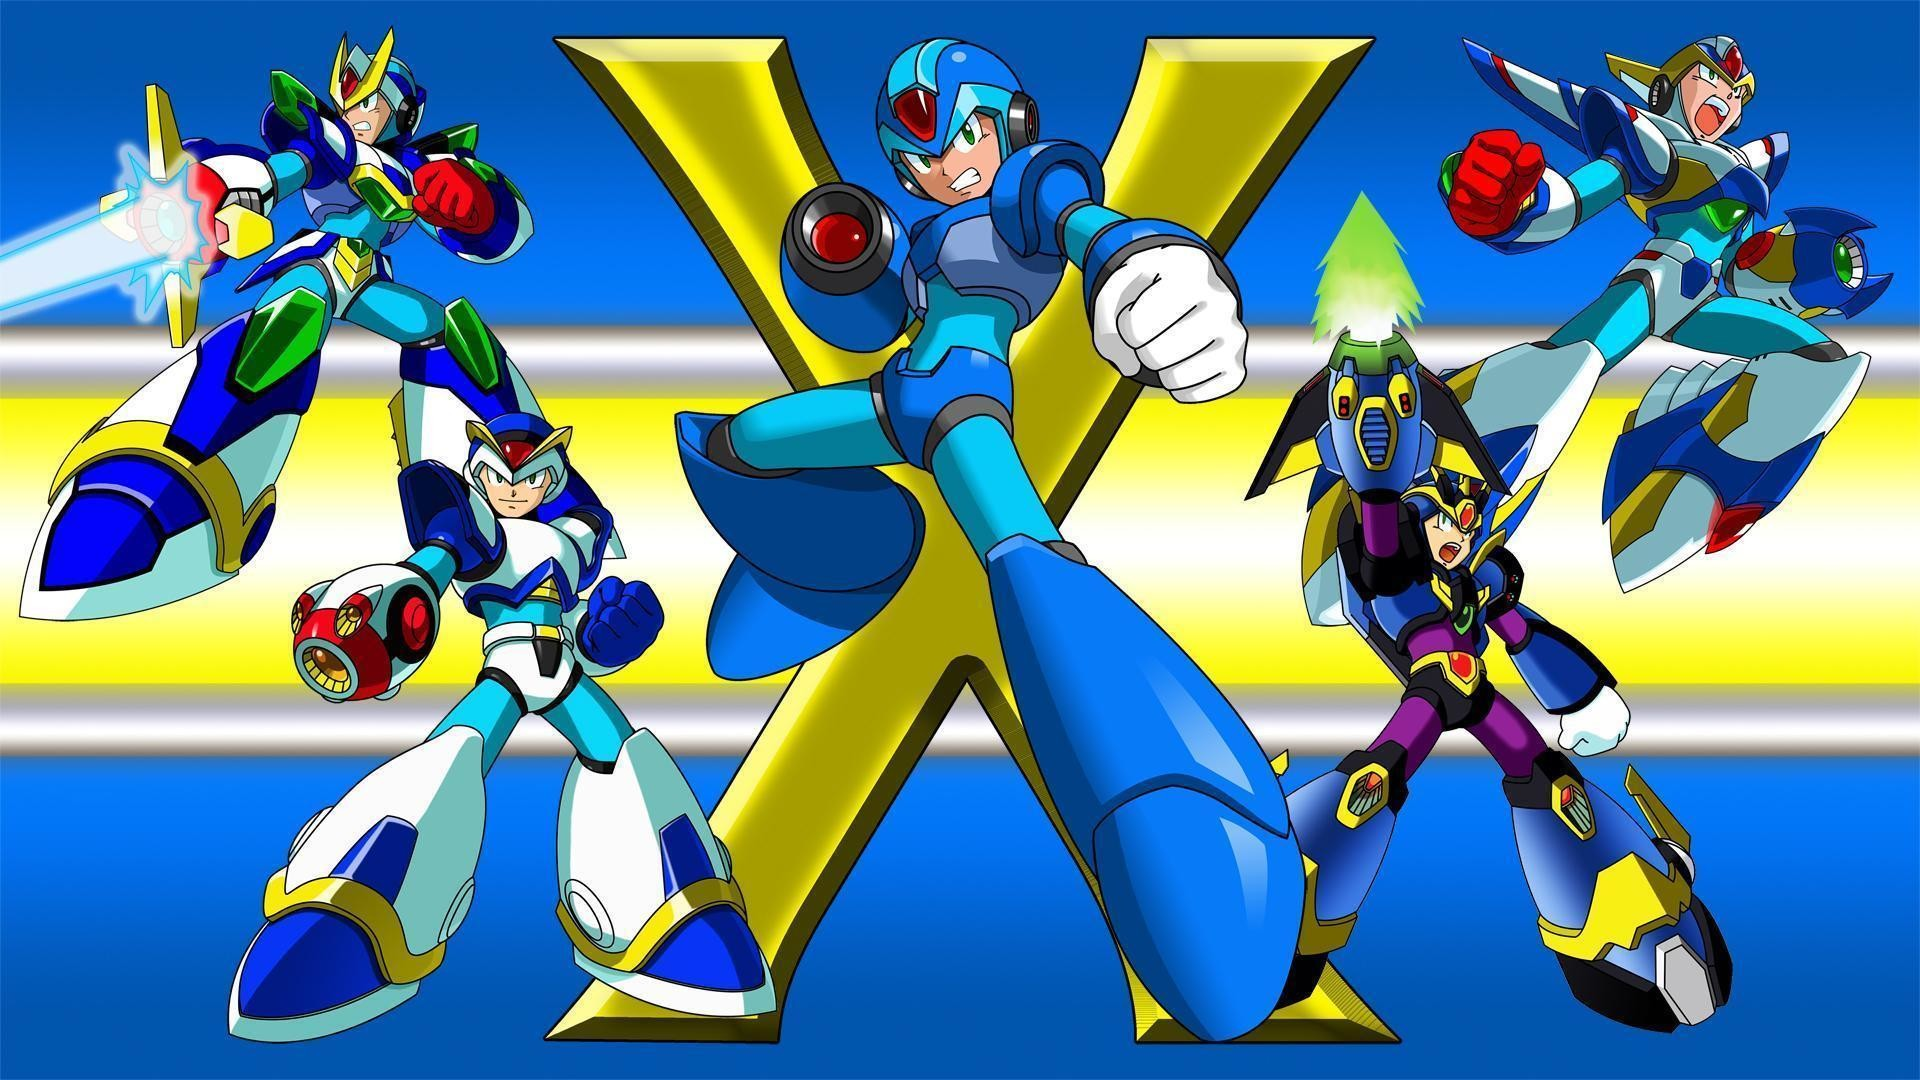 Megaman images Megaman x (shadow armor) wallpaper and background .